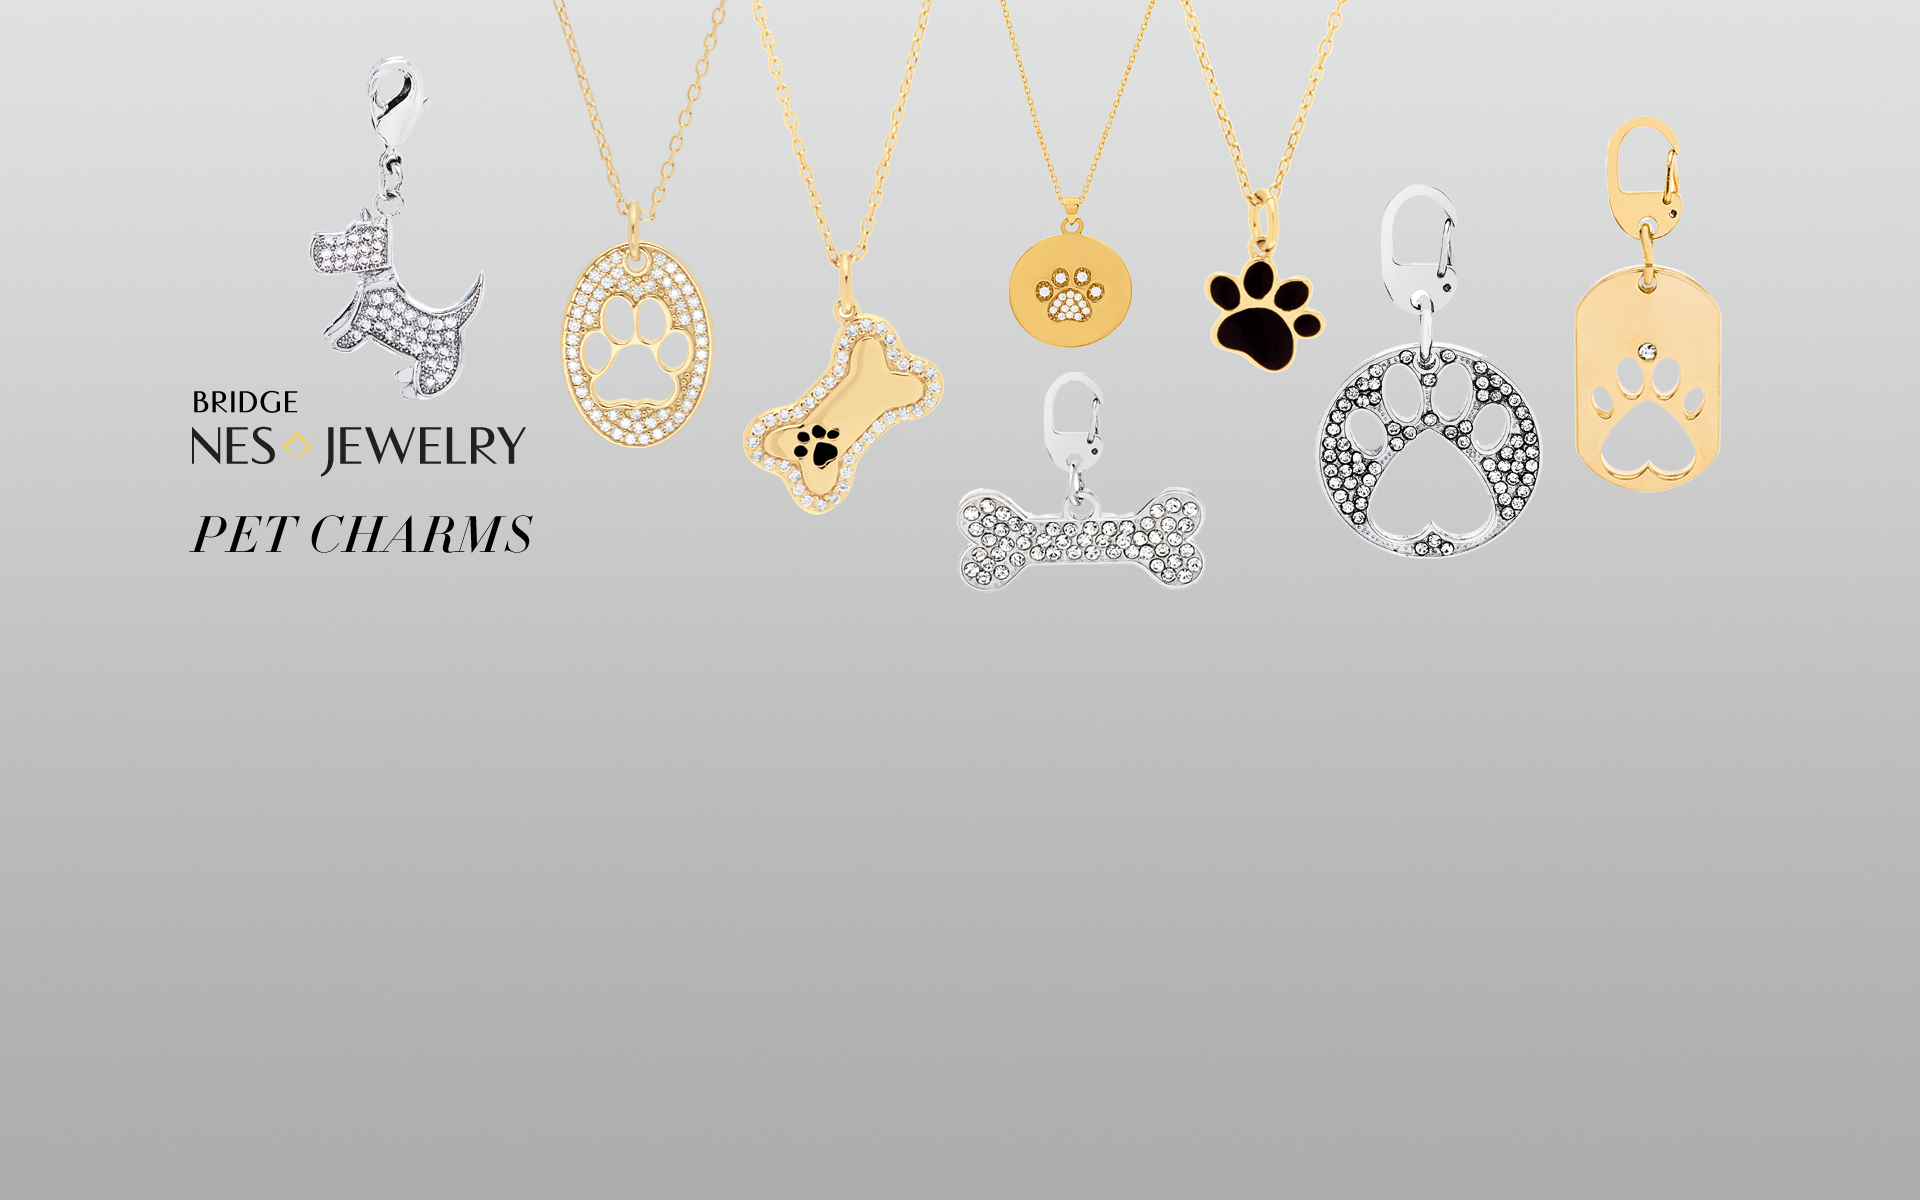 Bridge Page Slide – Pet Charms